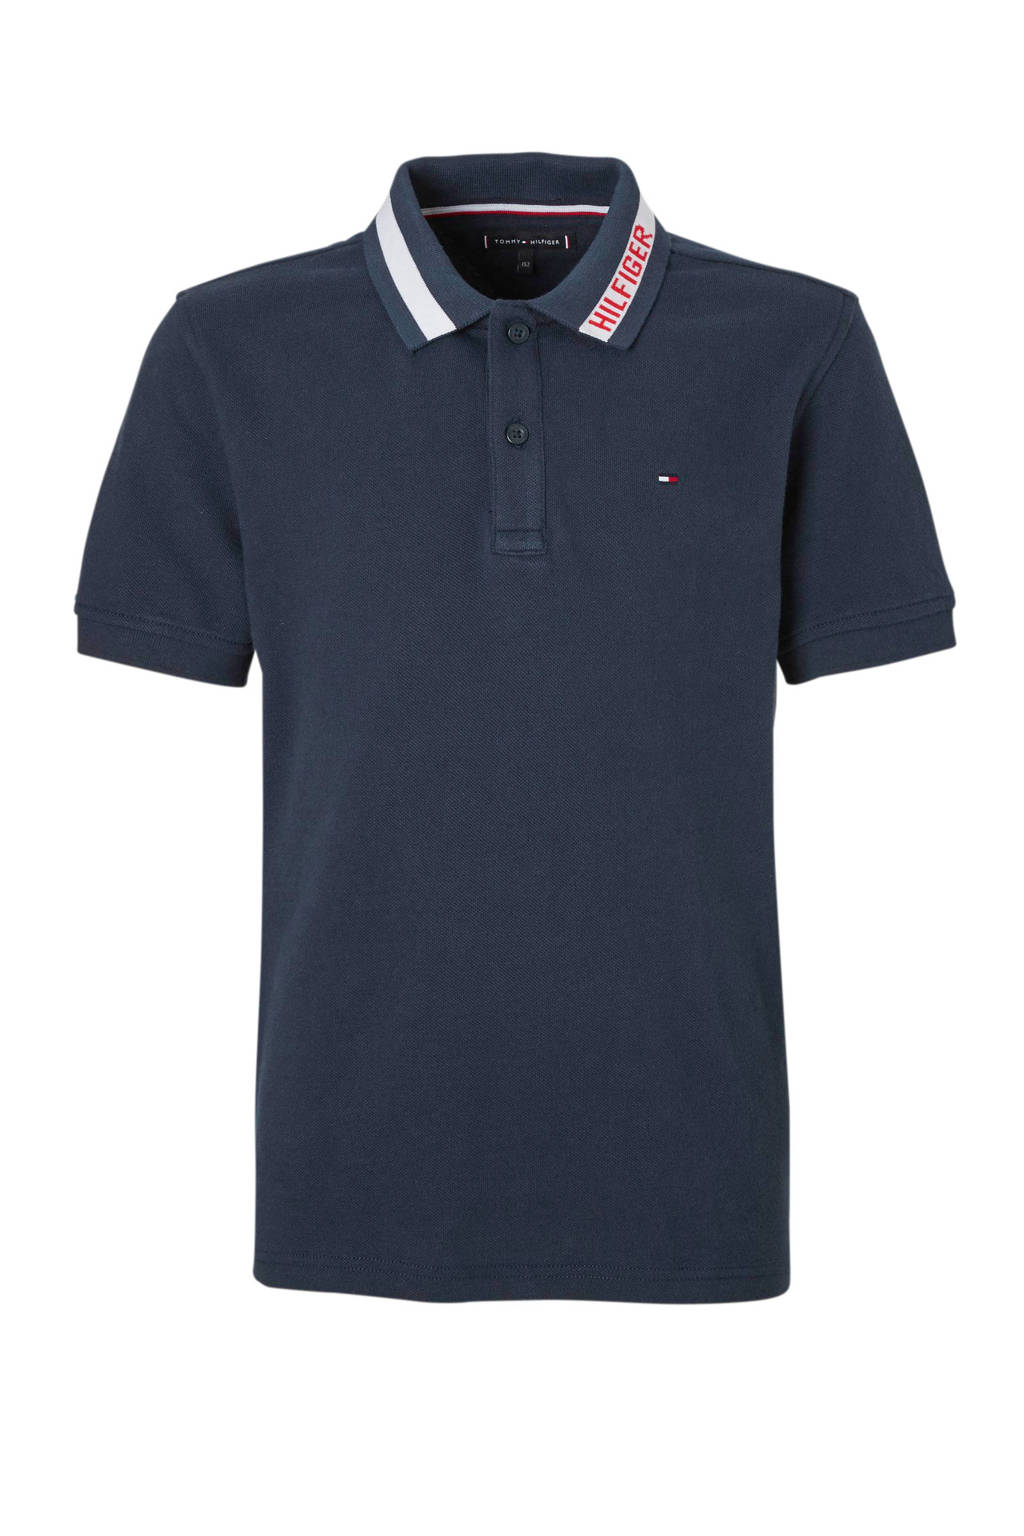 Tommy Hilfiger piqué polo donkerblauw, Donkerblauw